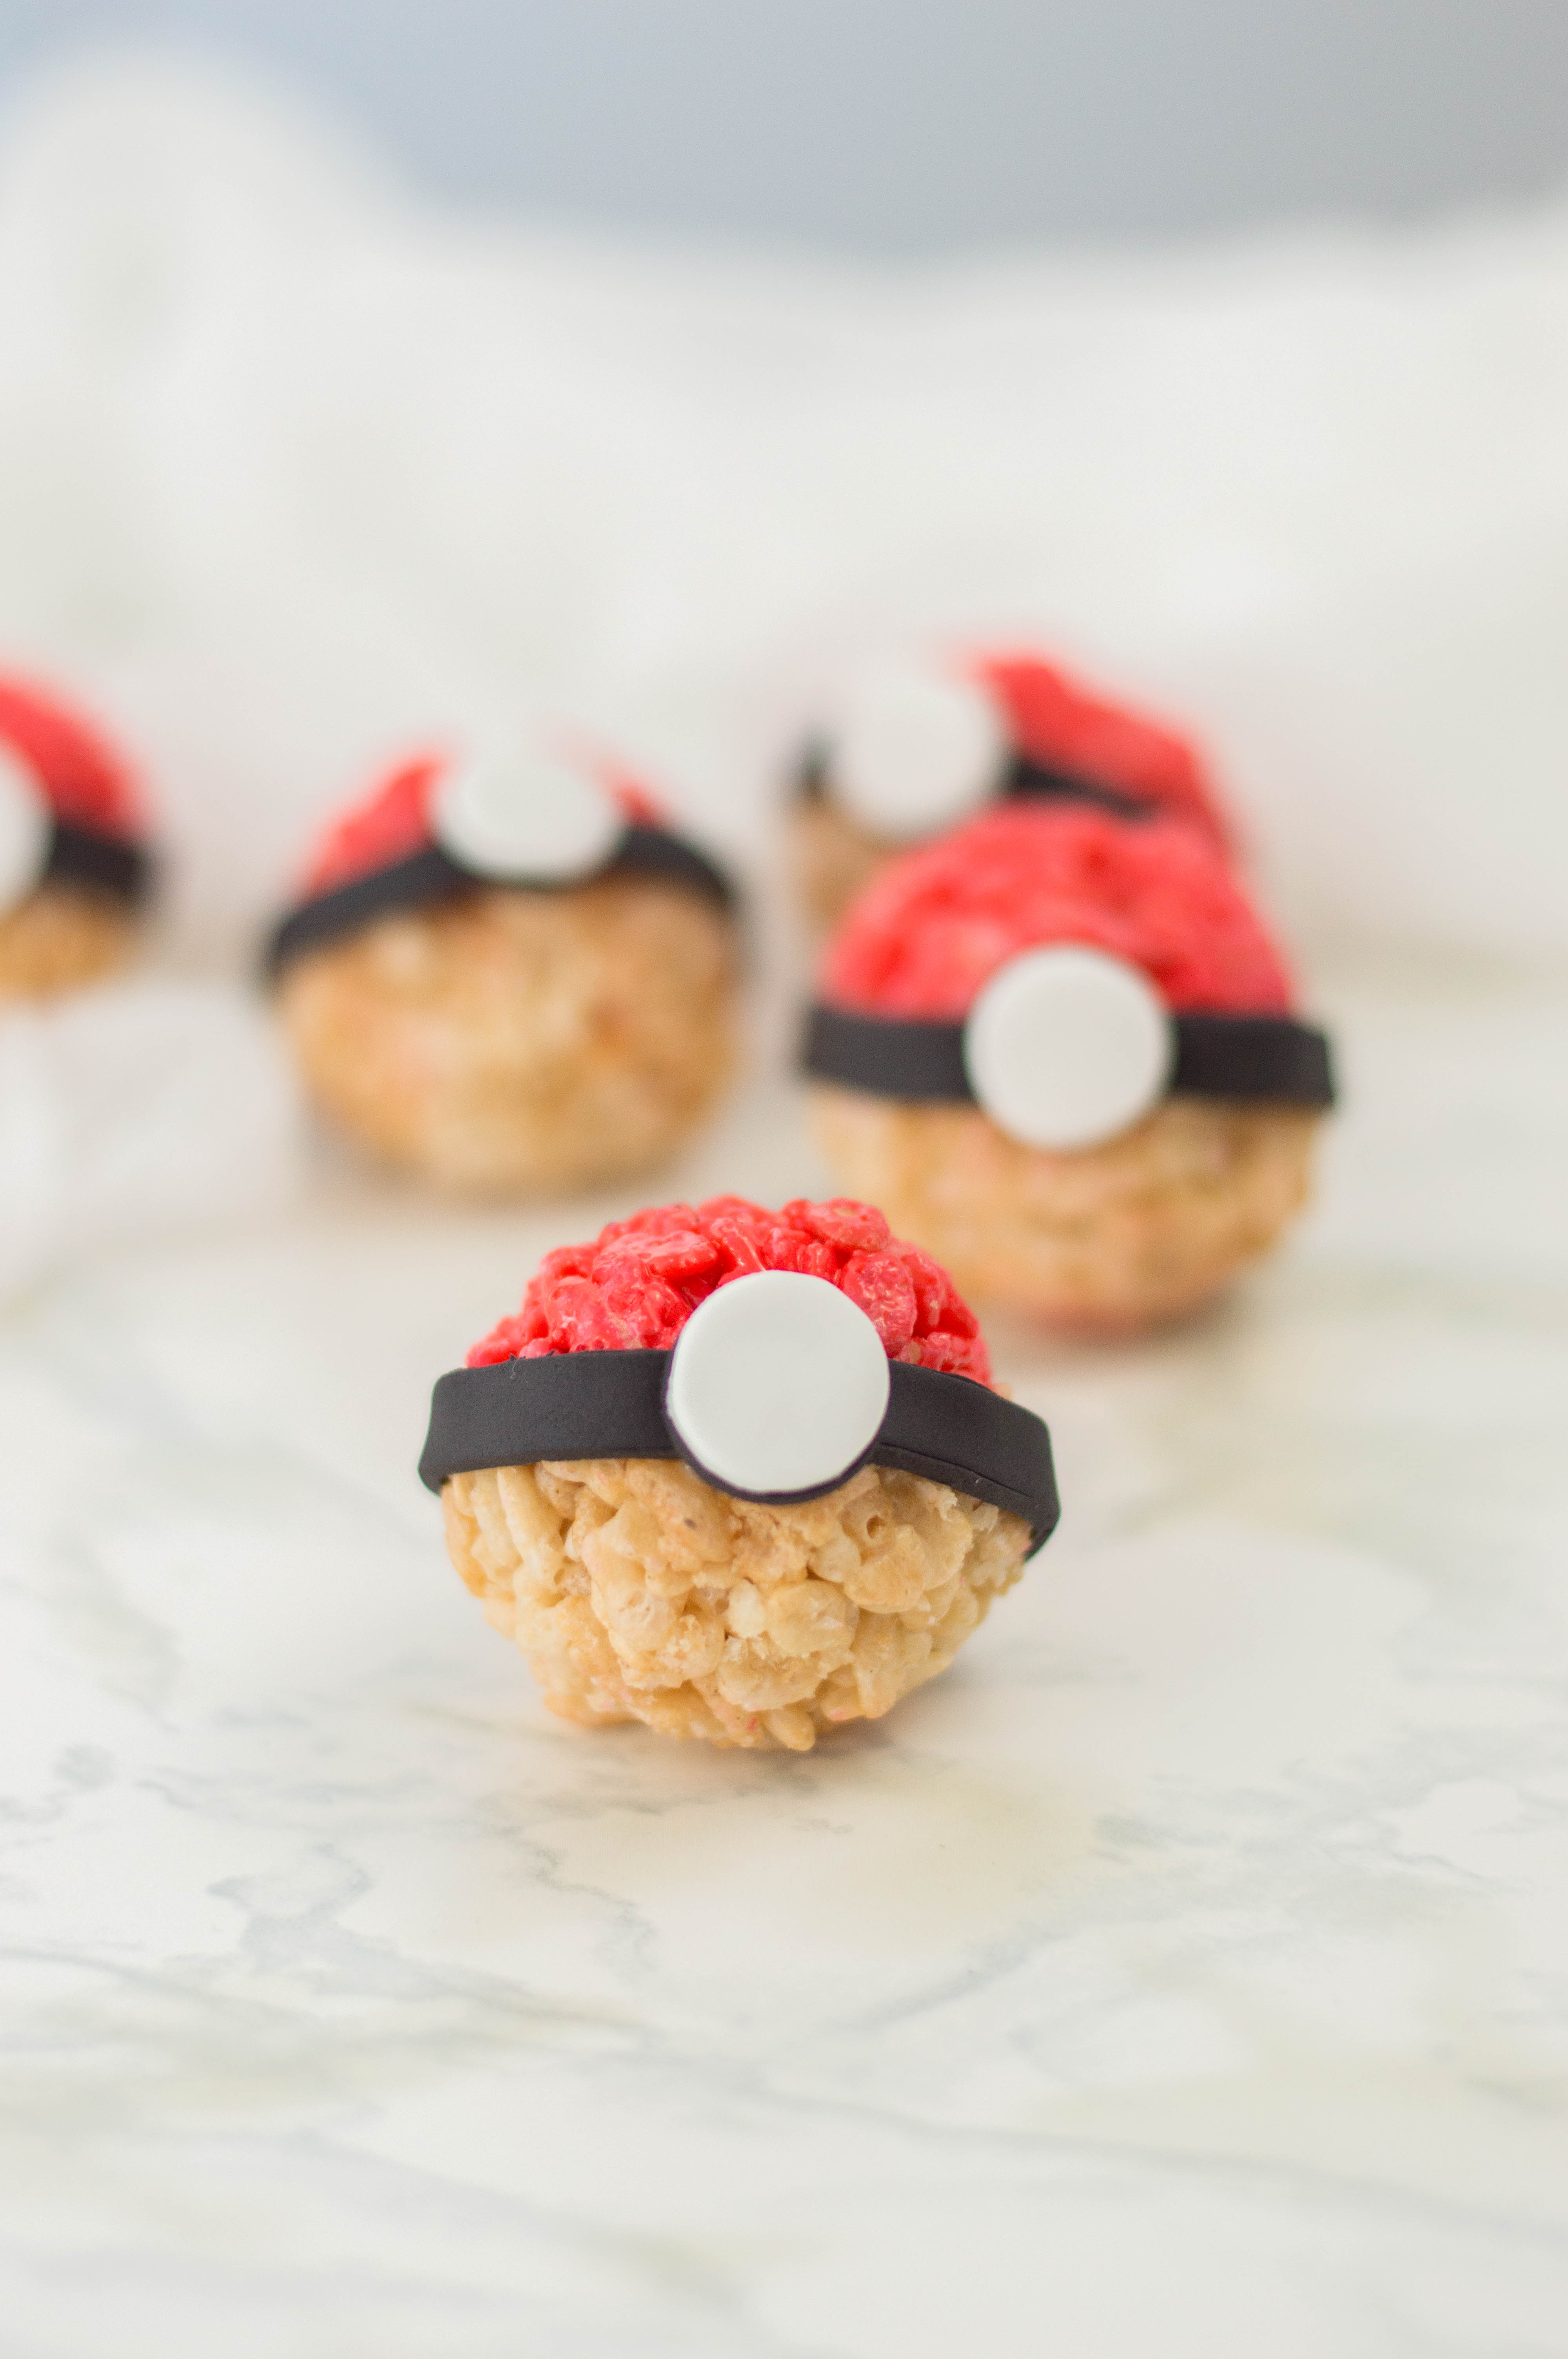 Pokeballs made from rice krispy Treats